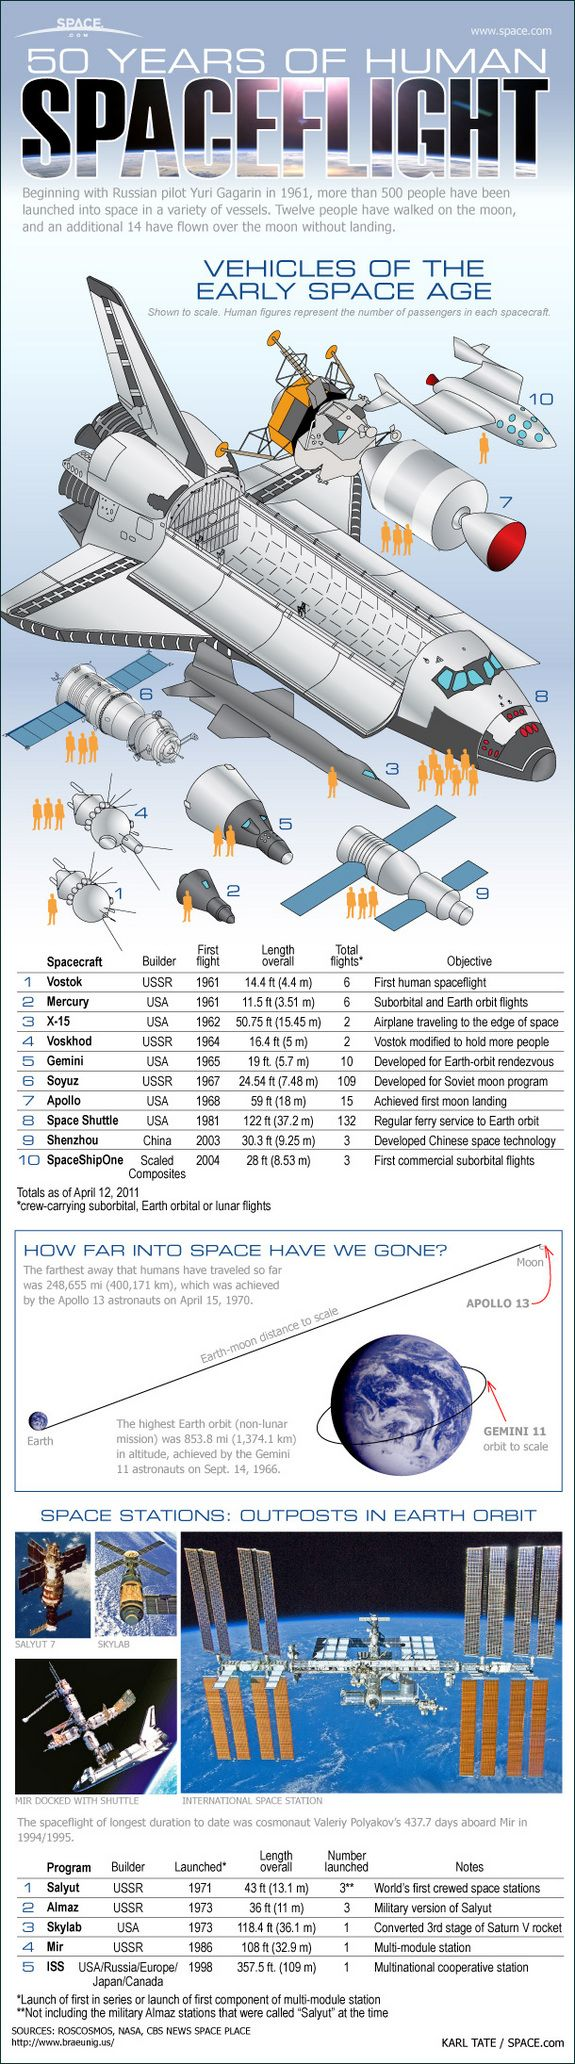 A great summary of the history of spacecraft.